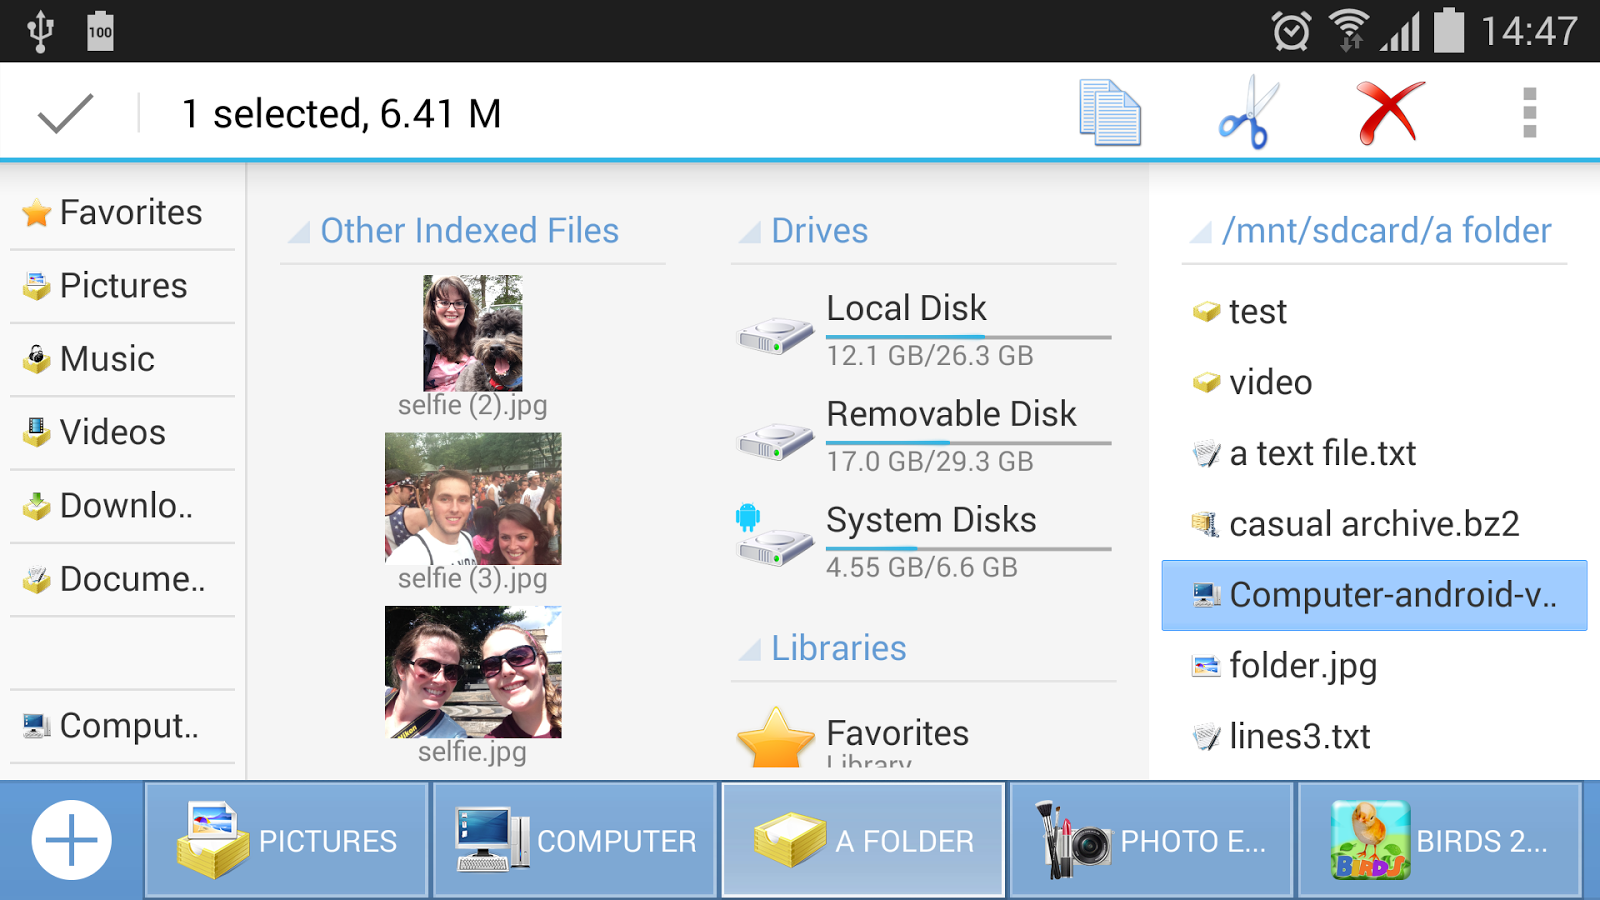 Computer File Explorer: captura de tela